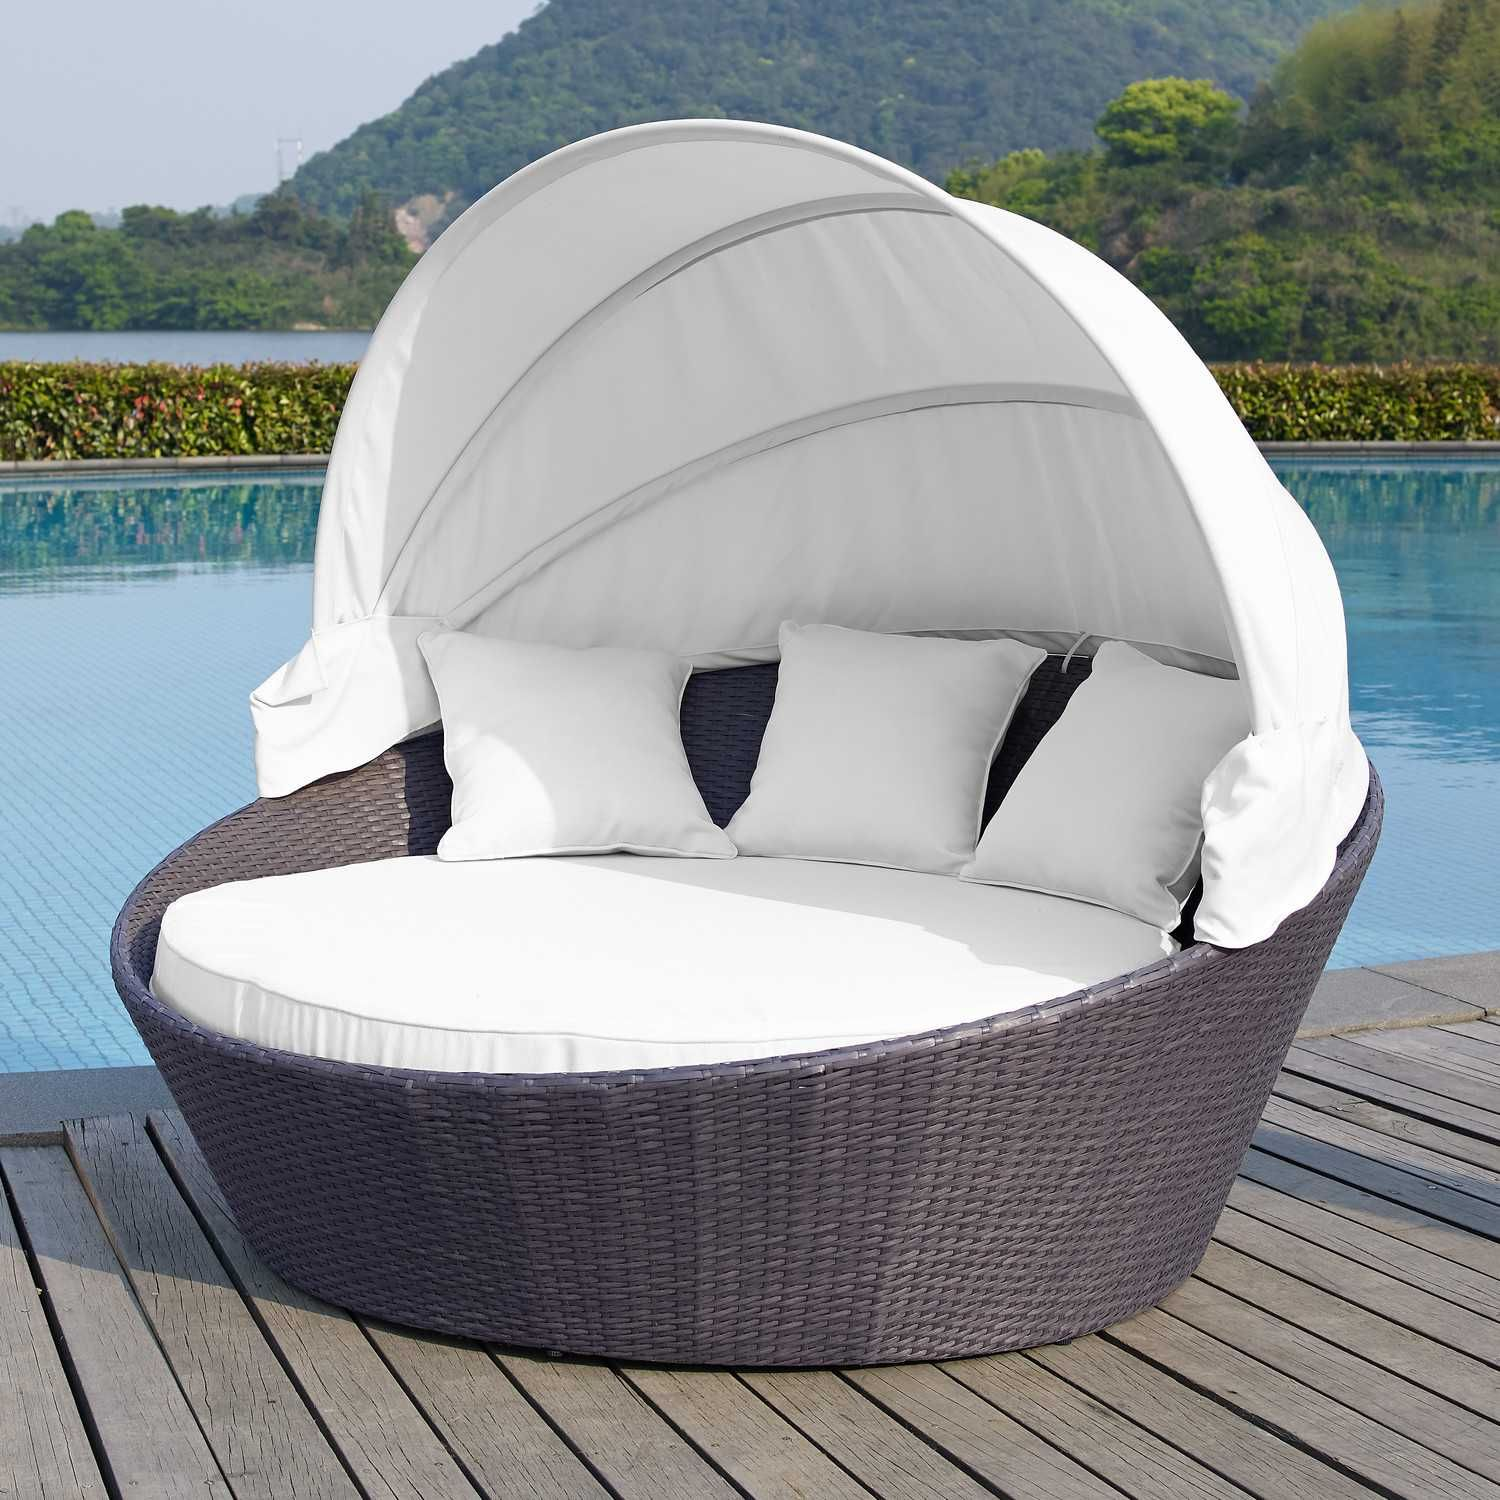 Chaiselongue Outdoor Pool Mobel Mesh Chaise Lounge Outdoor Mobel